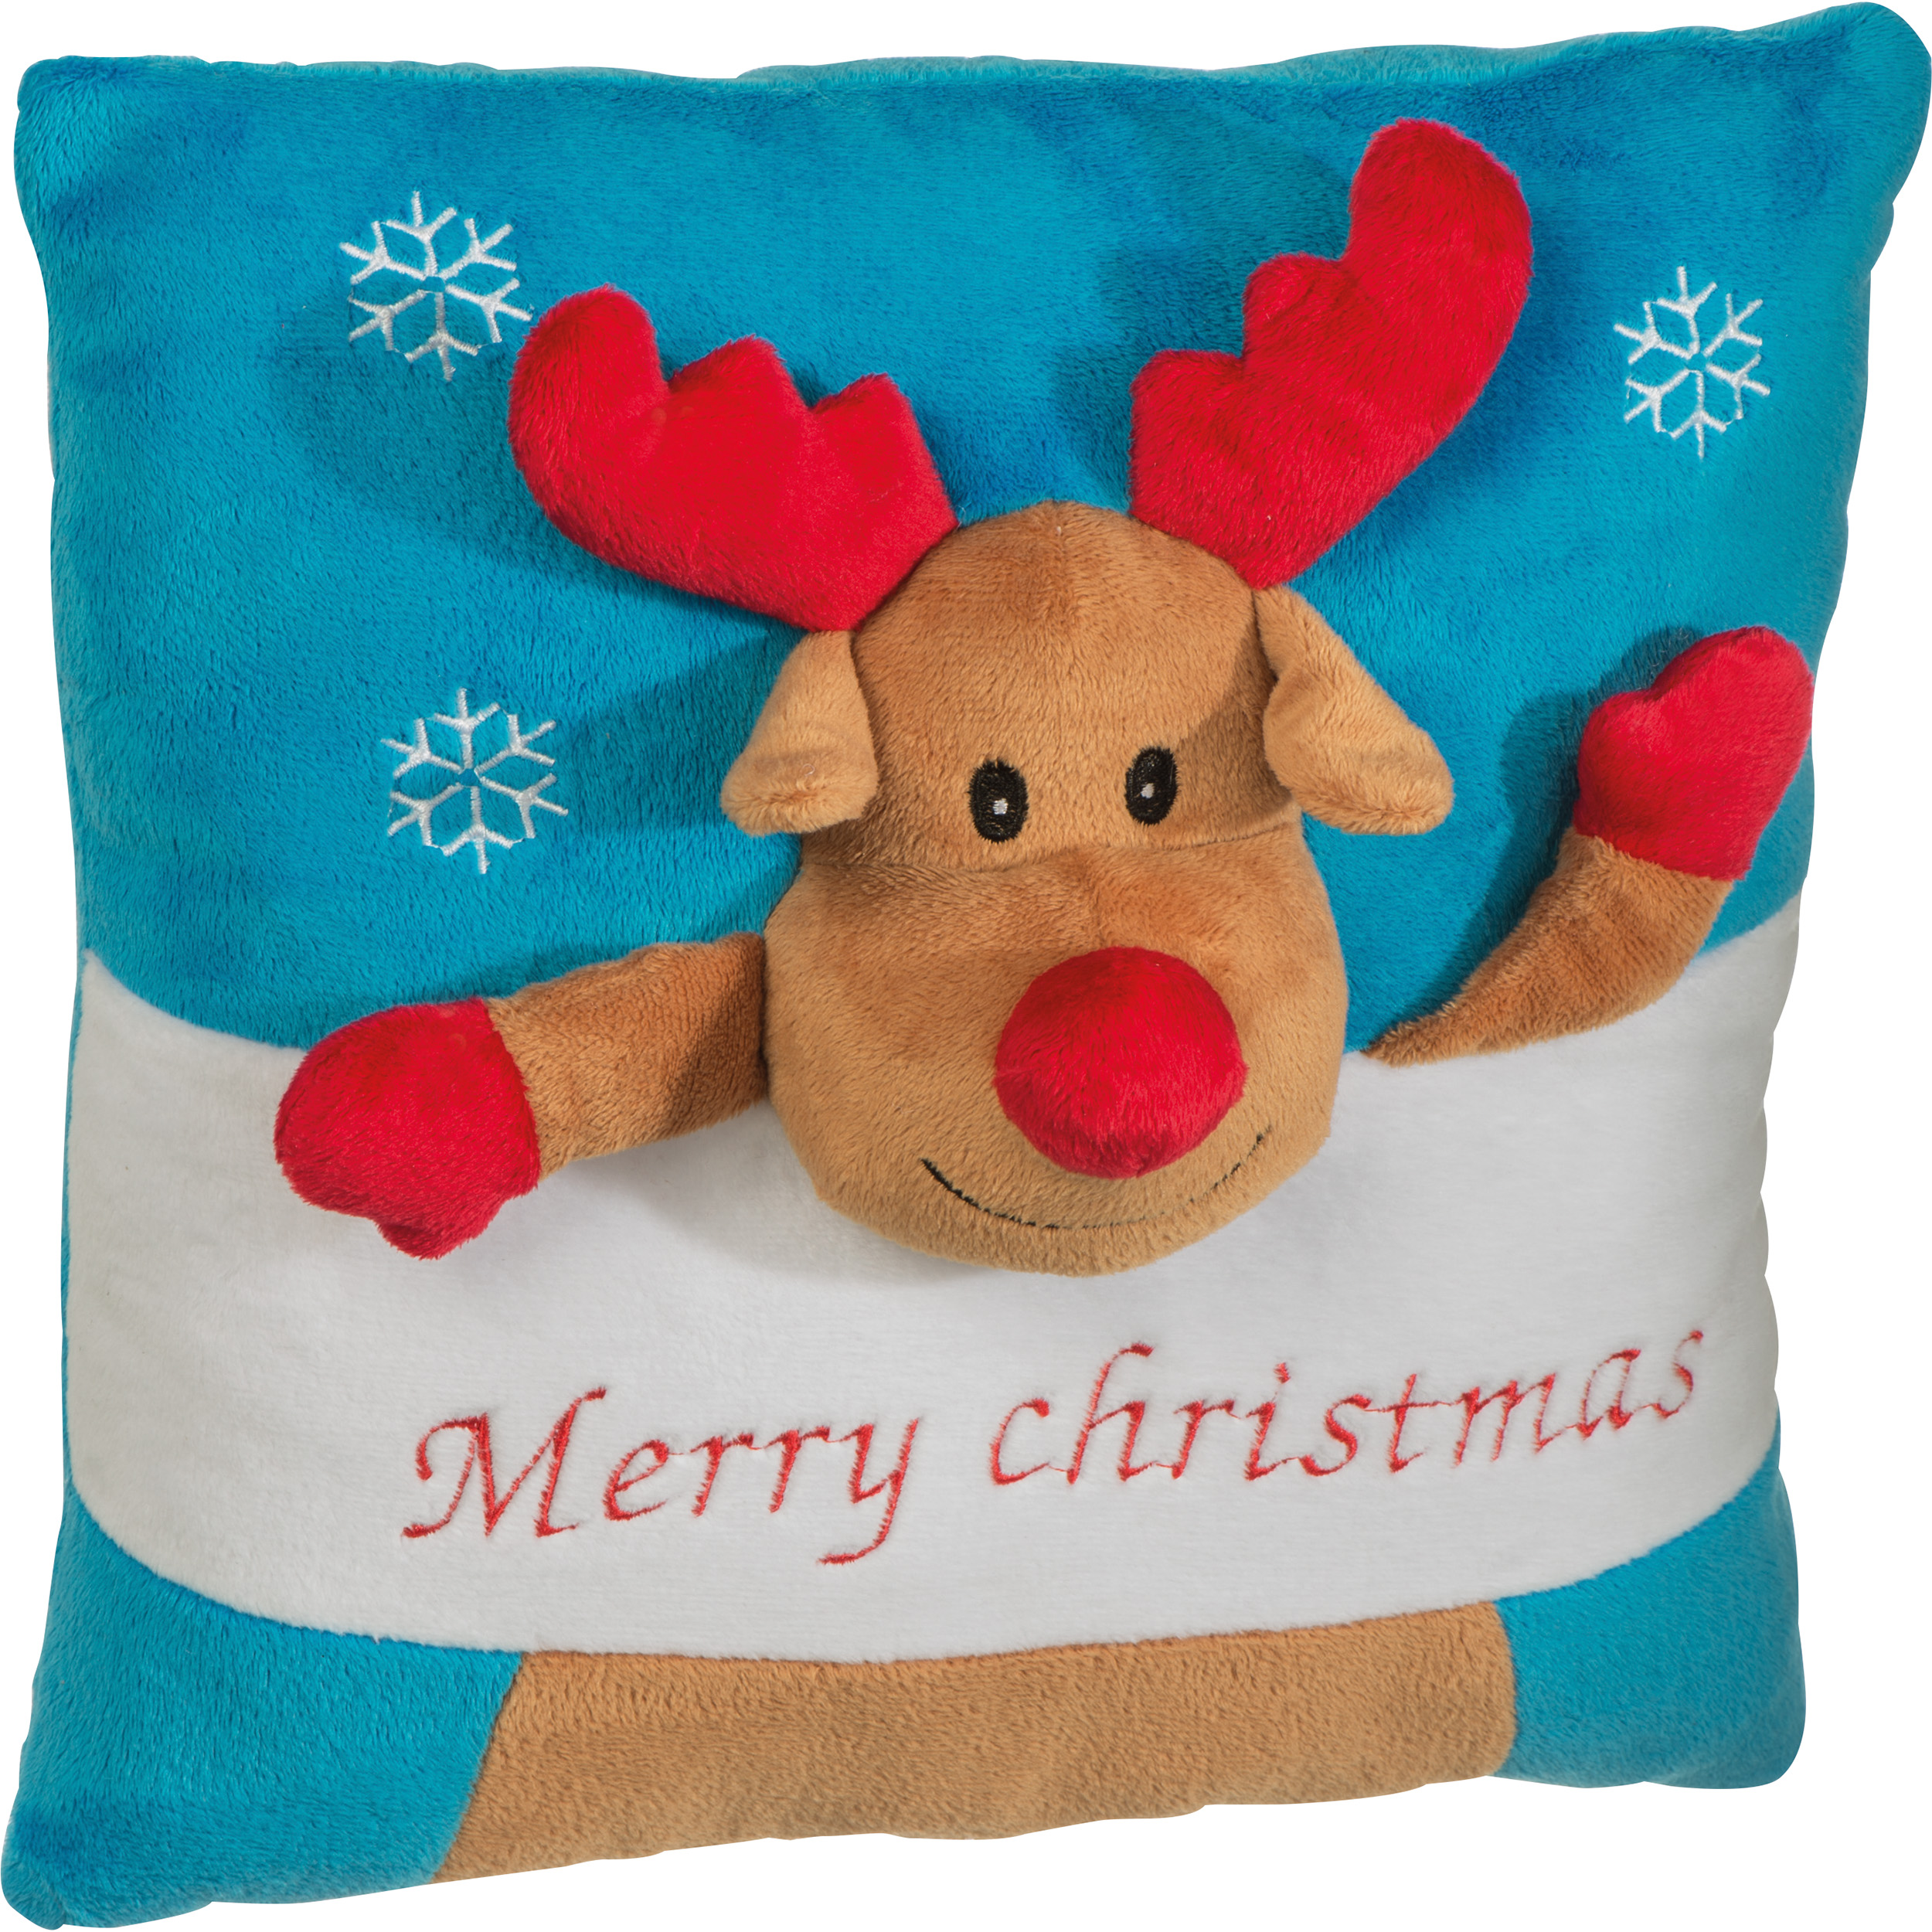 X-mas pillow with different designs